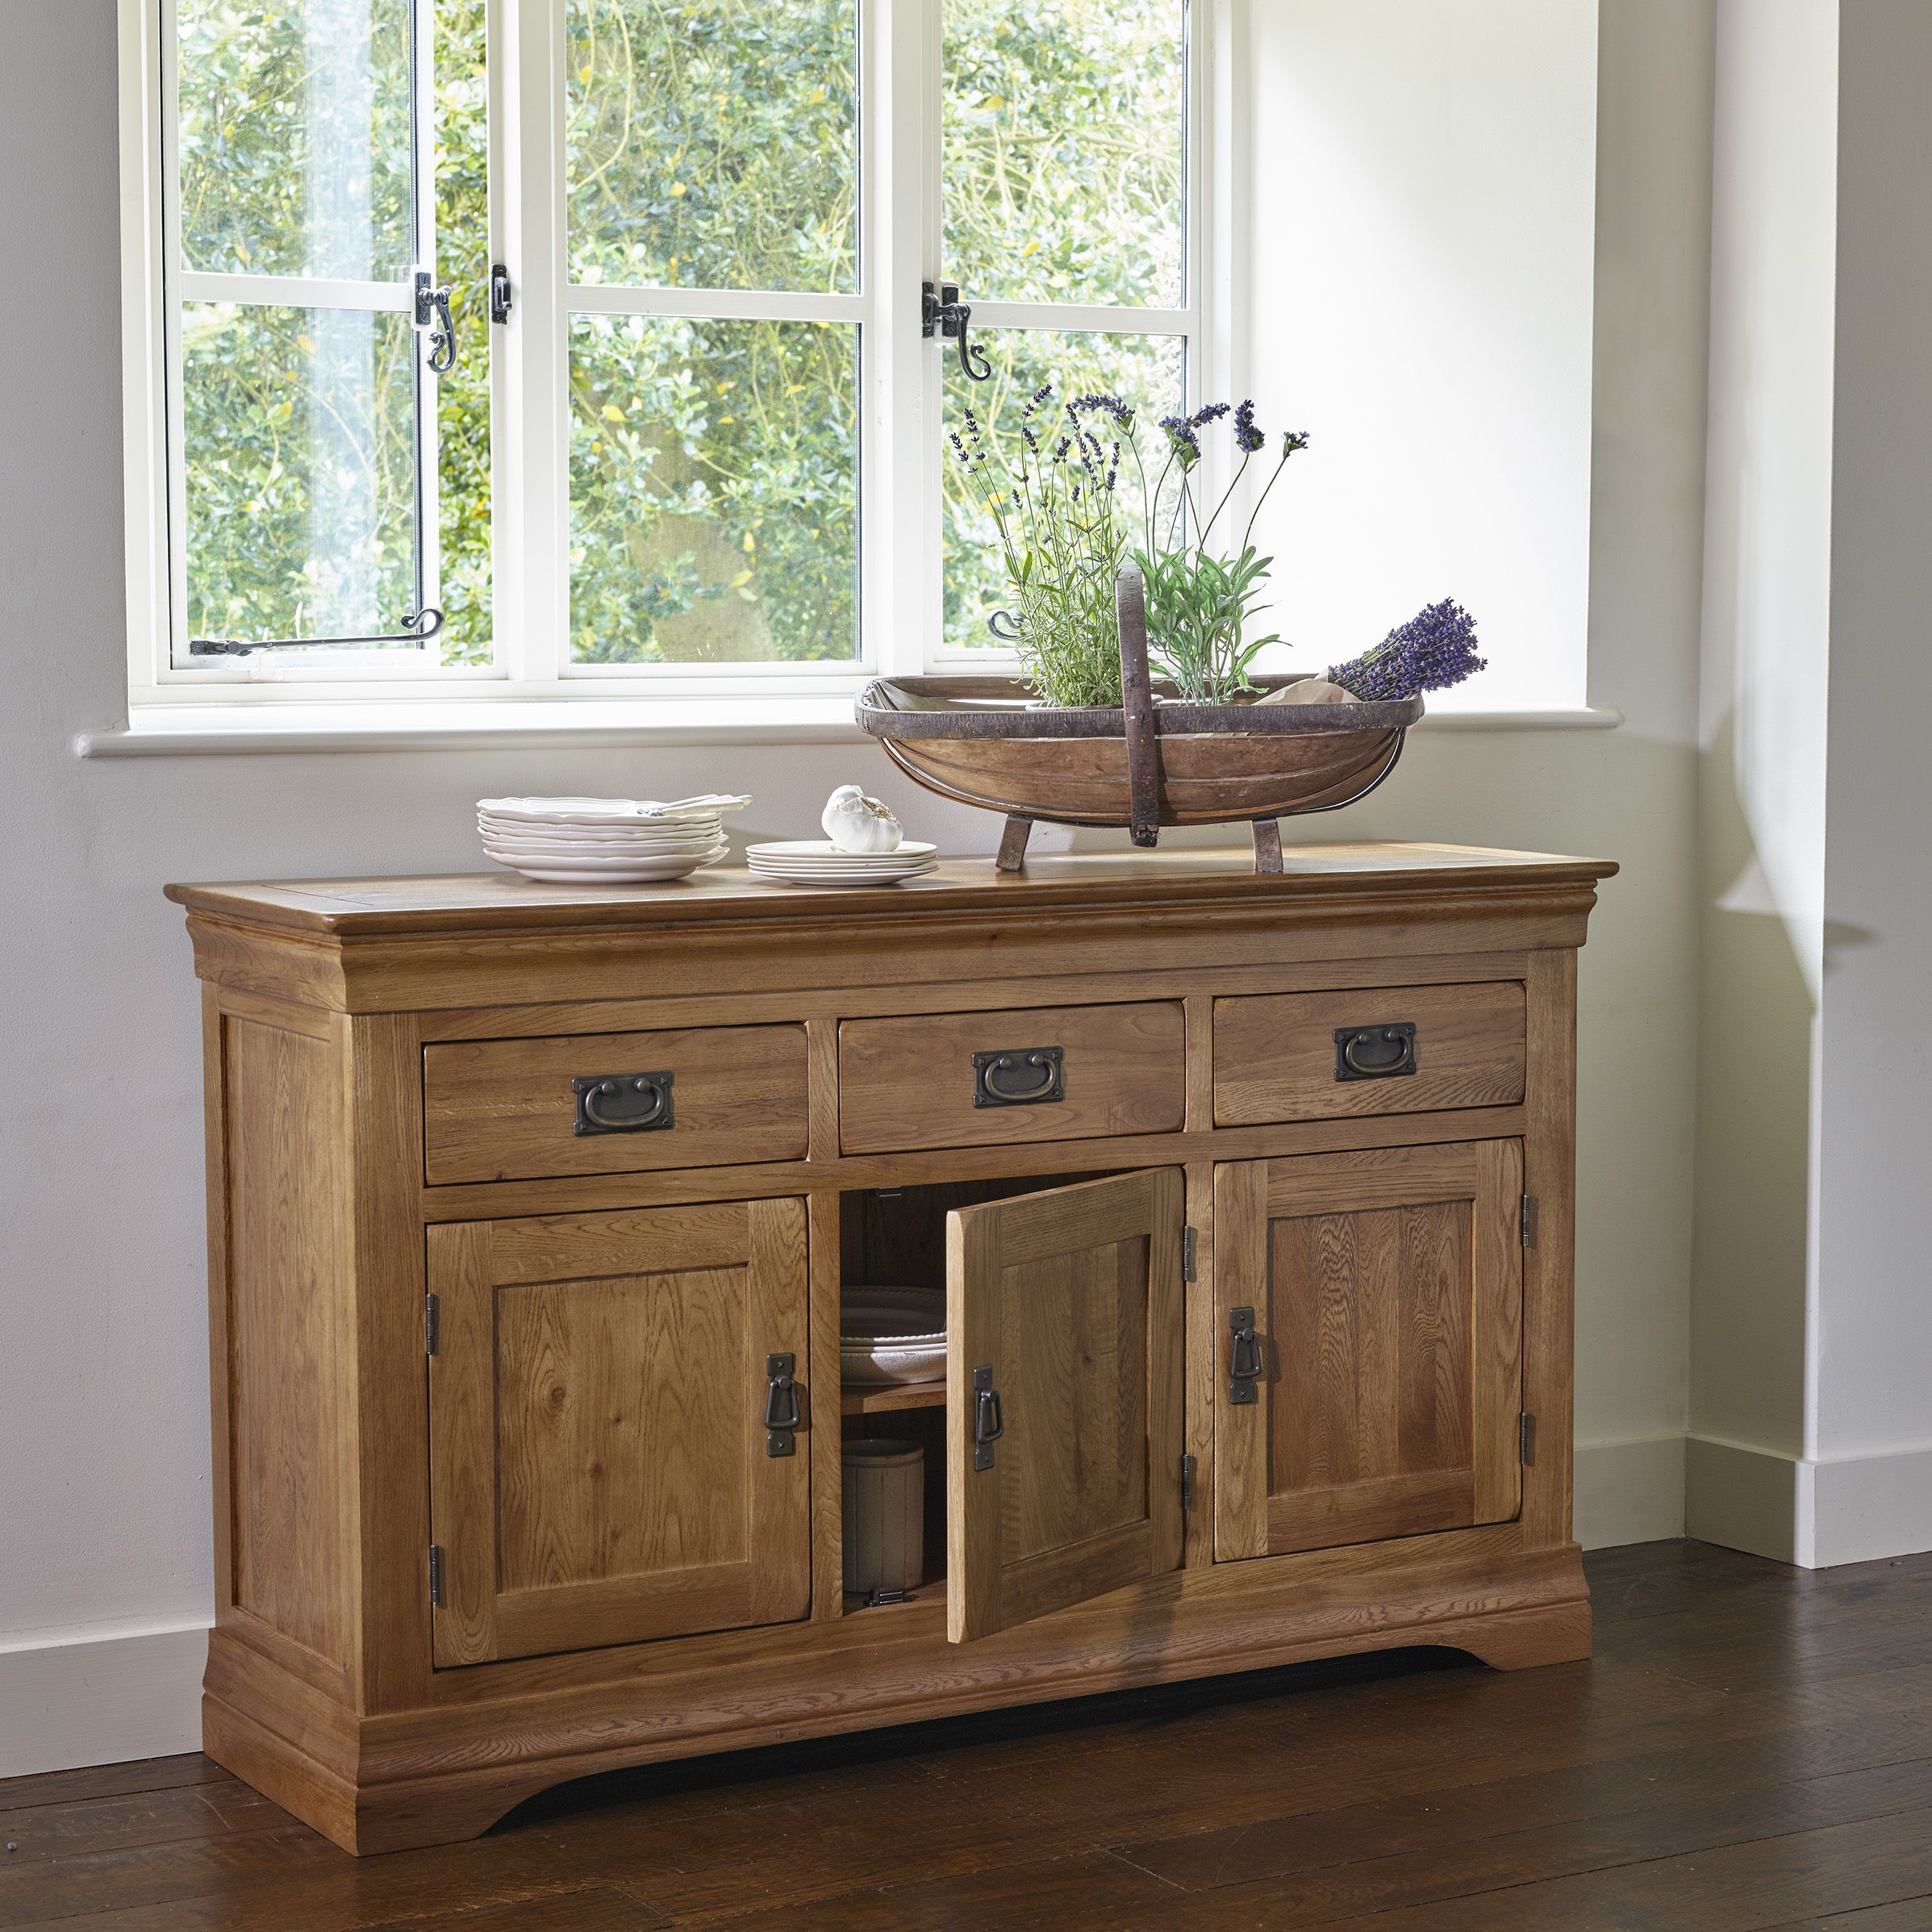 How to style your sideboard the oak furniture land blog